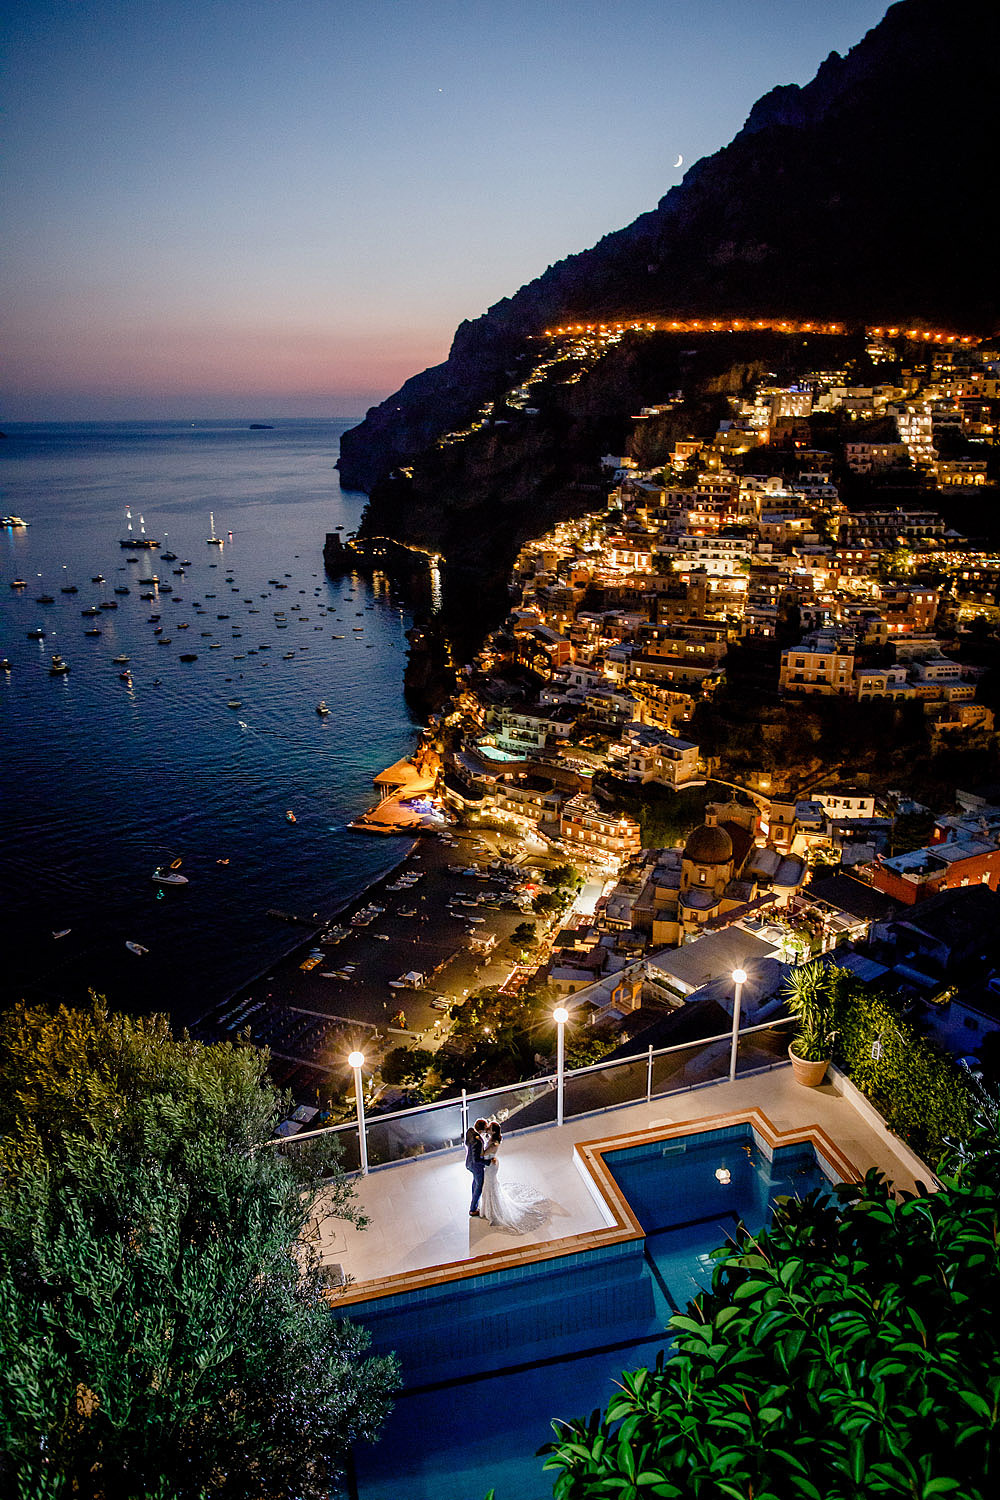 VILLA OLIVIERO MATRIMONIO IN UN LUOGO INCANTATO POSITANO :: Luxury wedding photography - 37